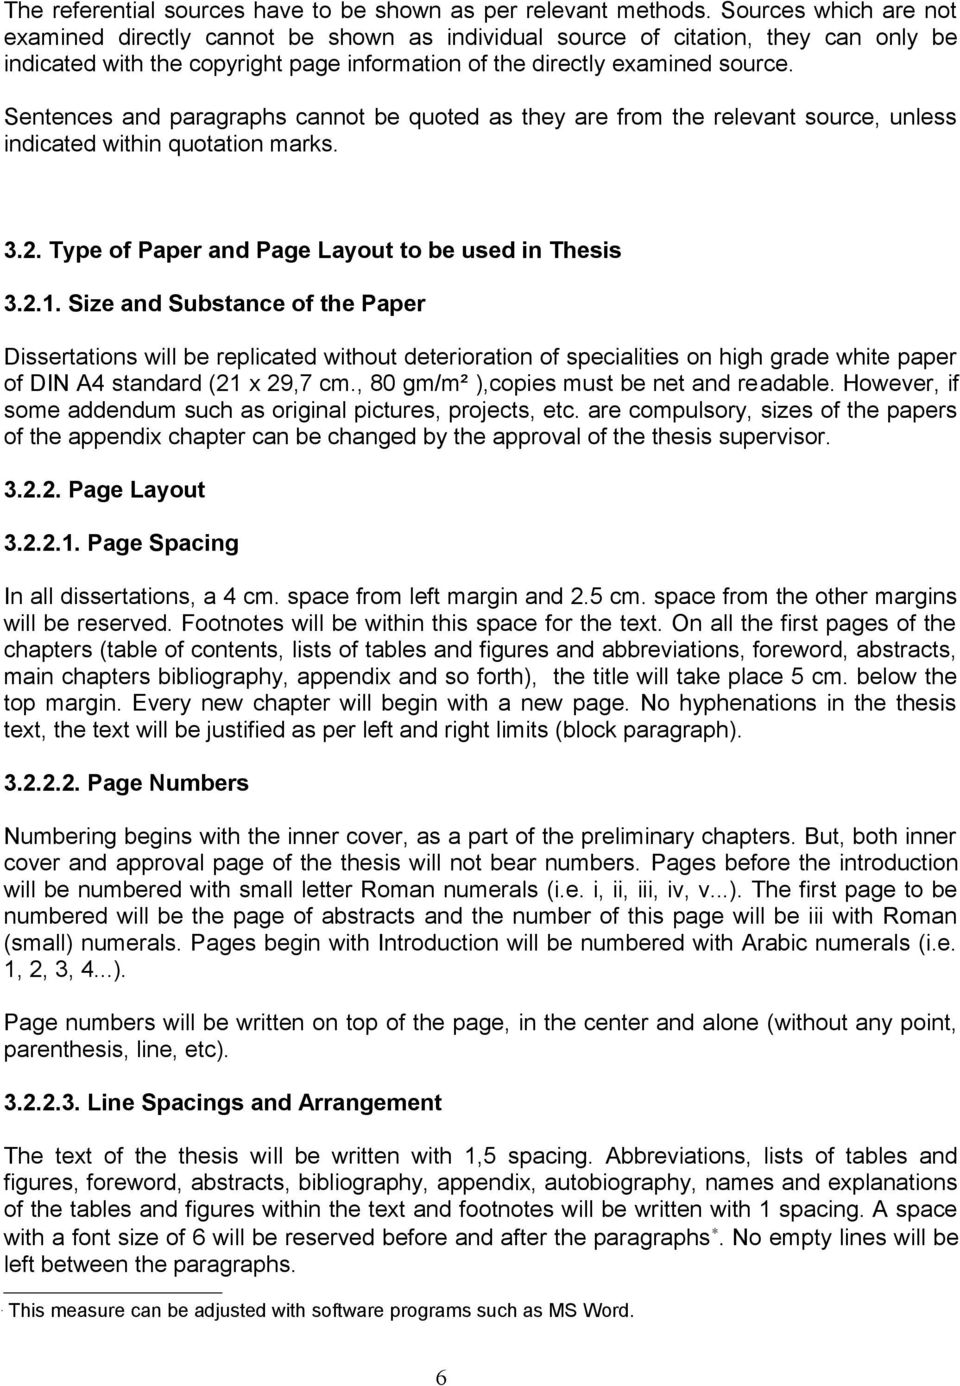 Thesis guidelines near east university